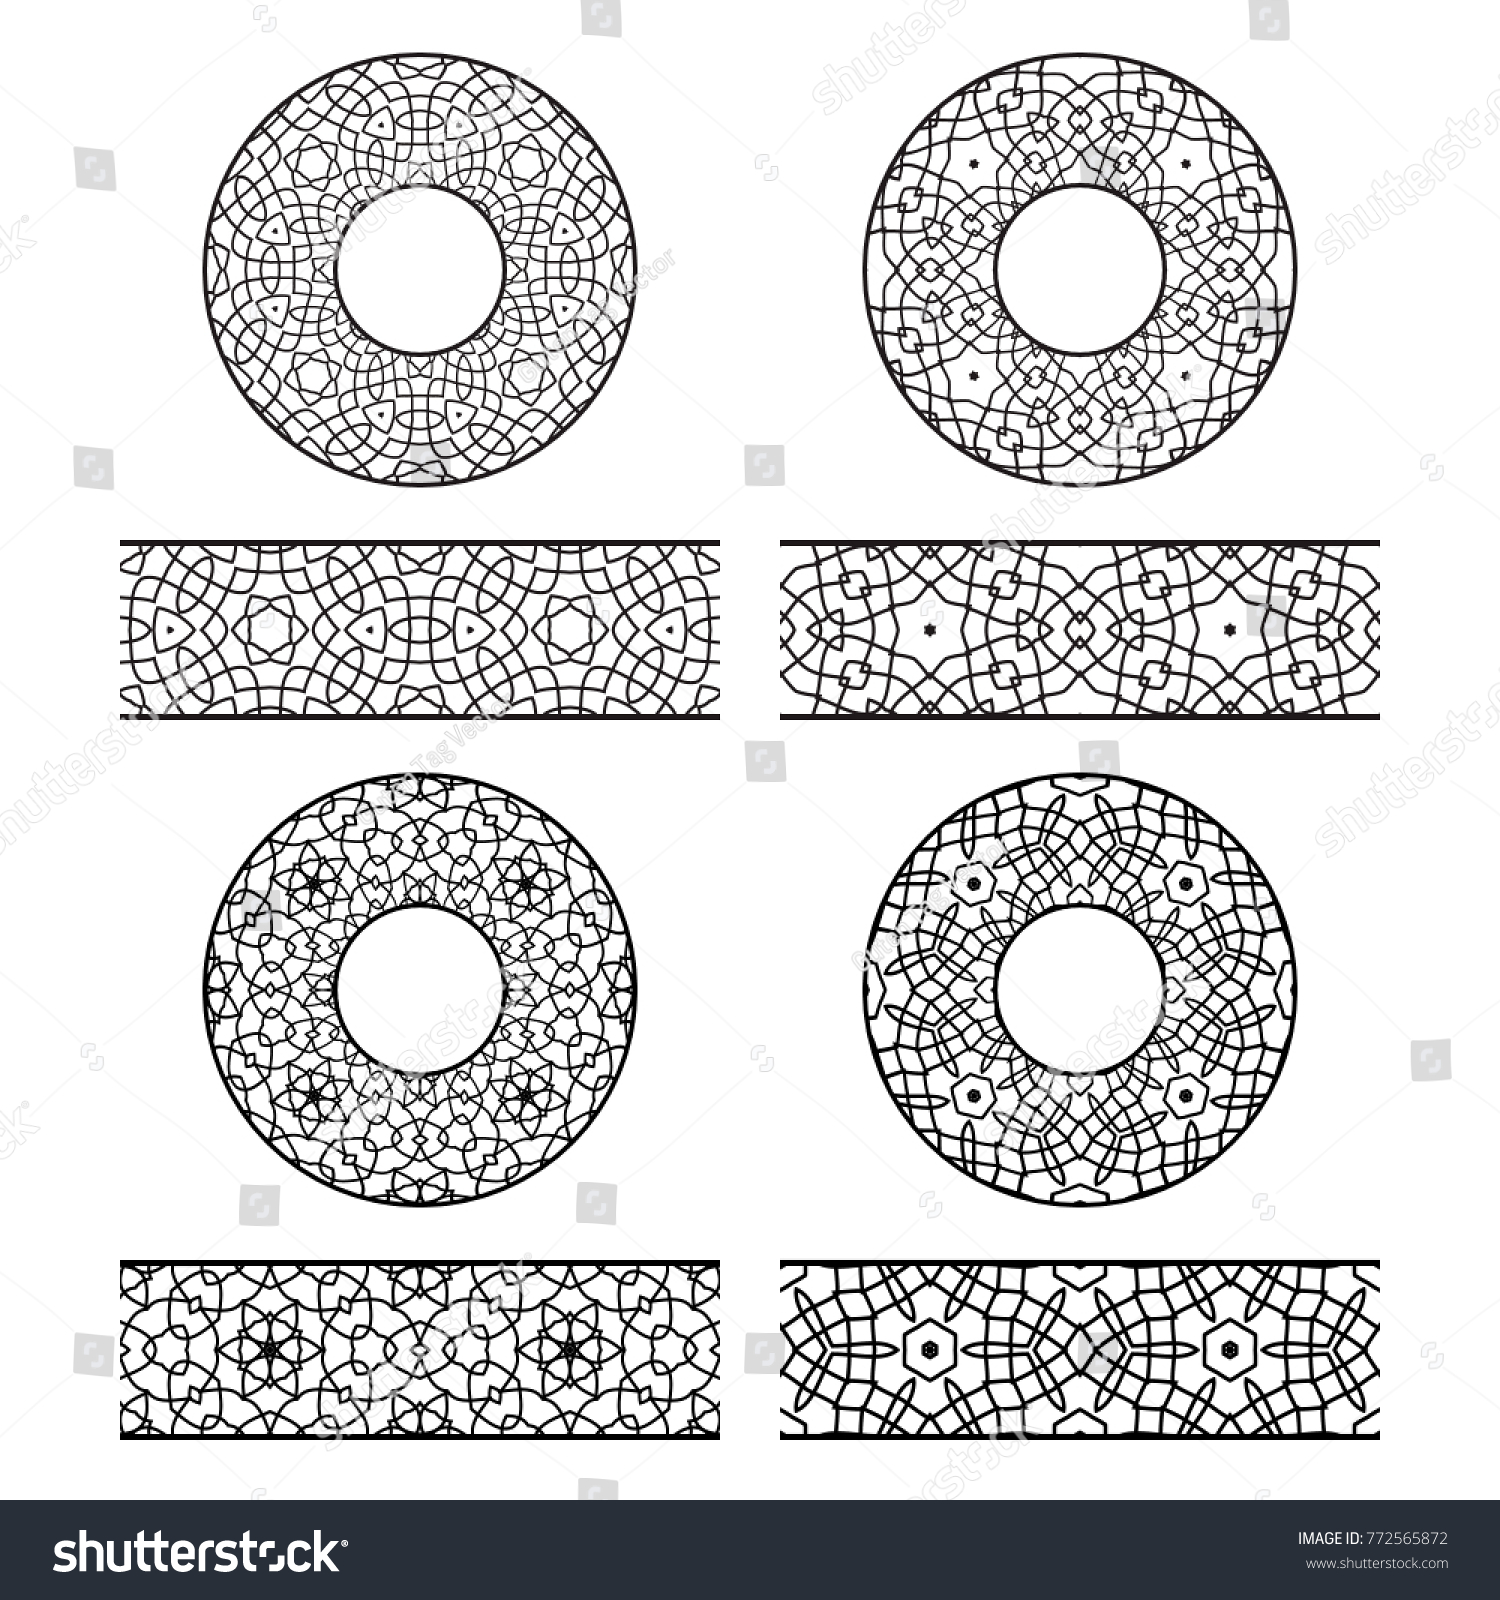 Lace Vector Brushes Templates Round Decorations Stock Vector ...